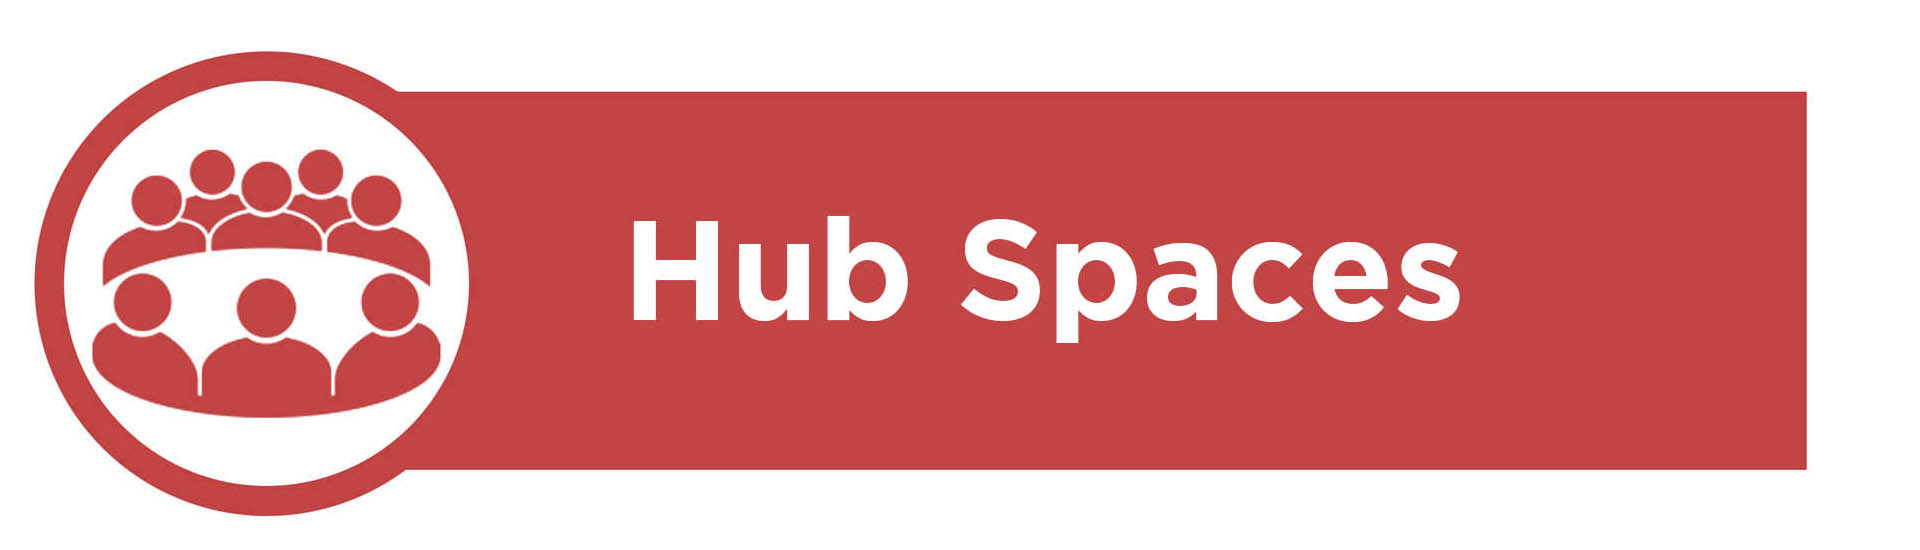 Banner image containing the text 'Hub Spaces'